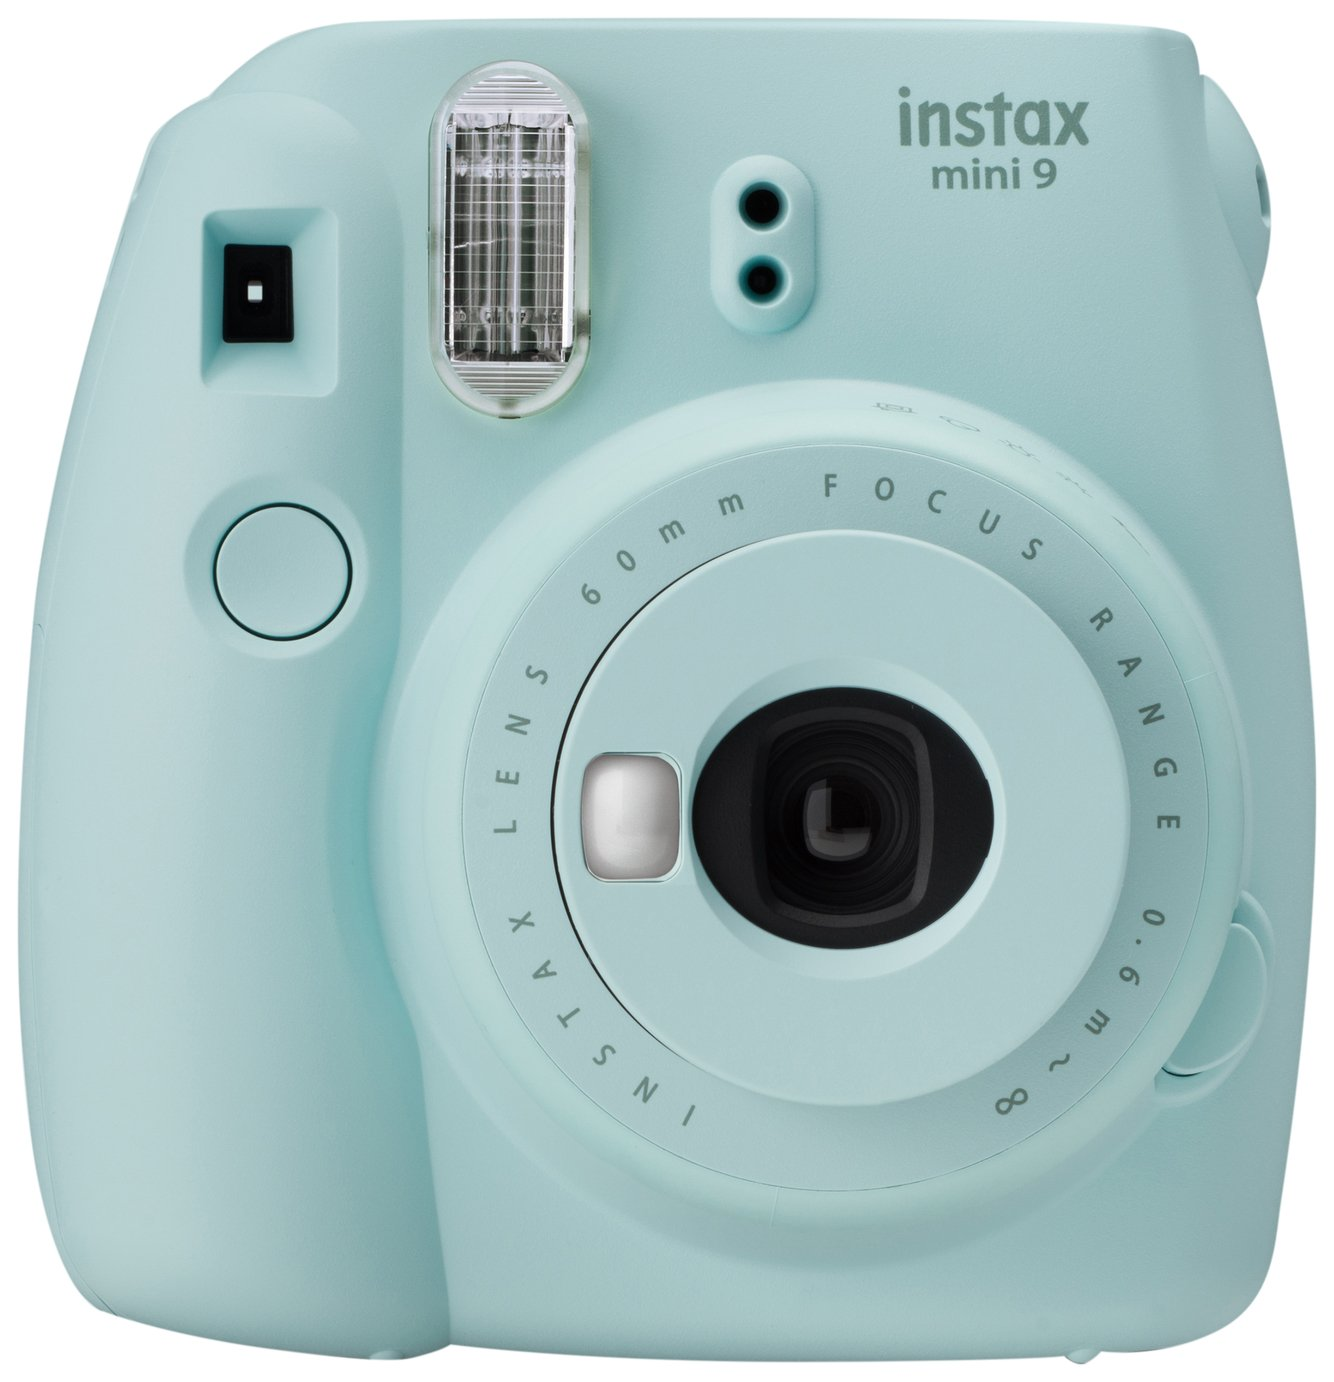 Polaroid Camera Urban Outfitters Uk : Buy instax mini camera with shots ice blue instant